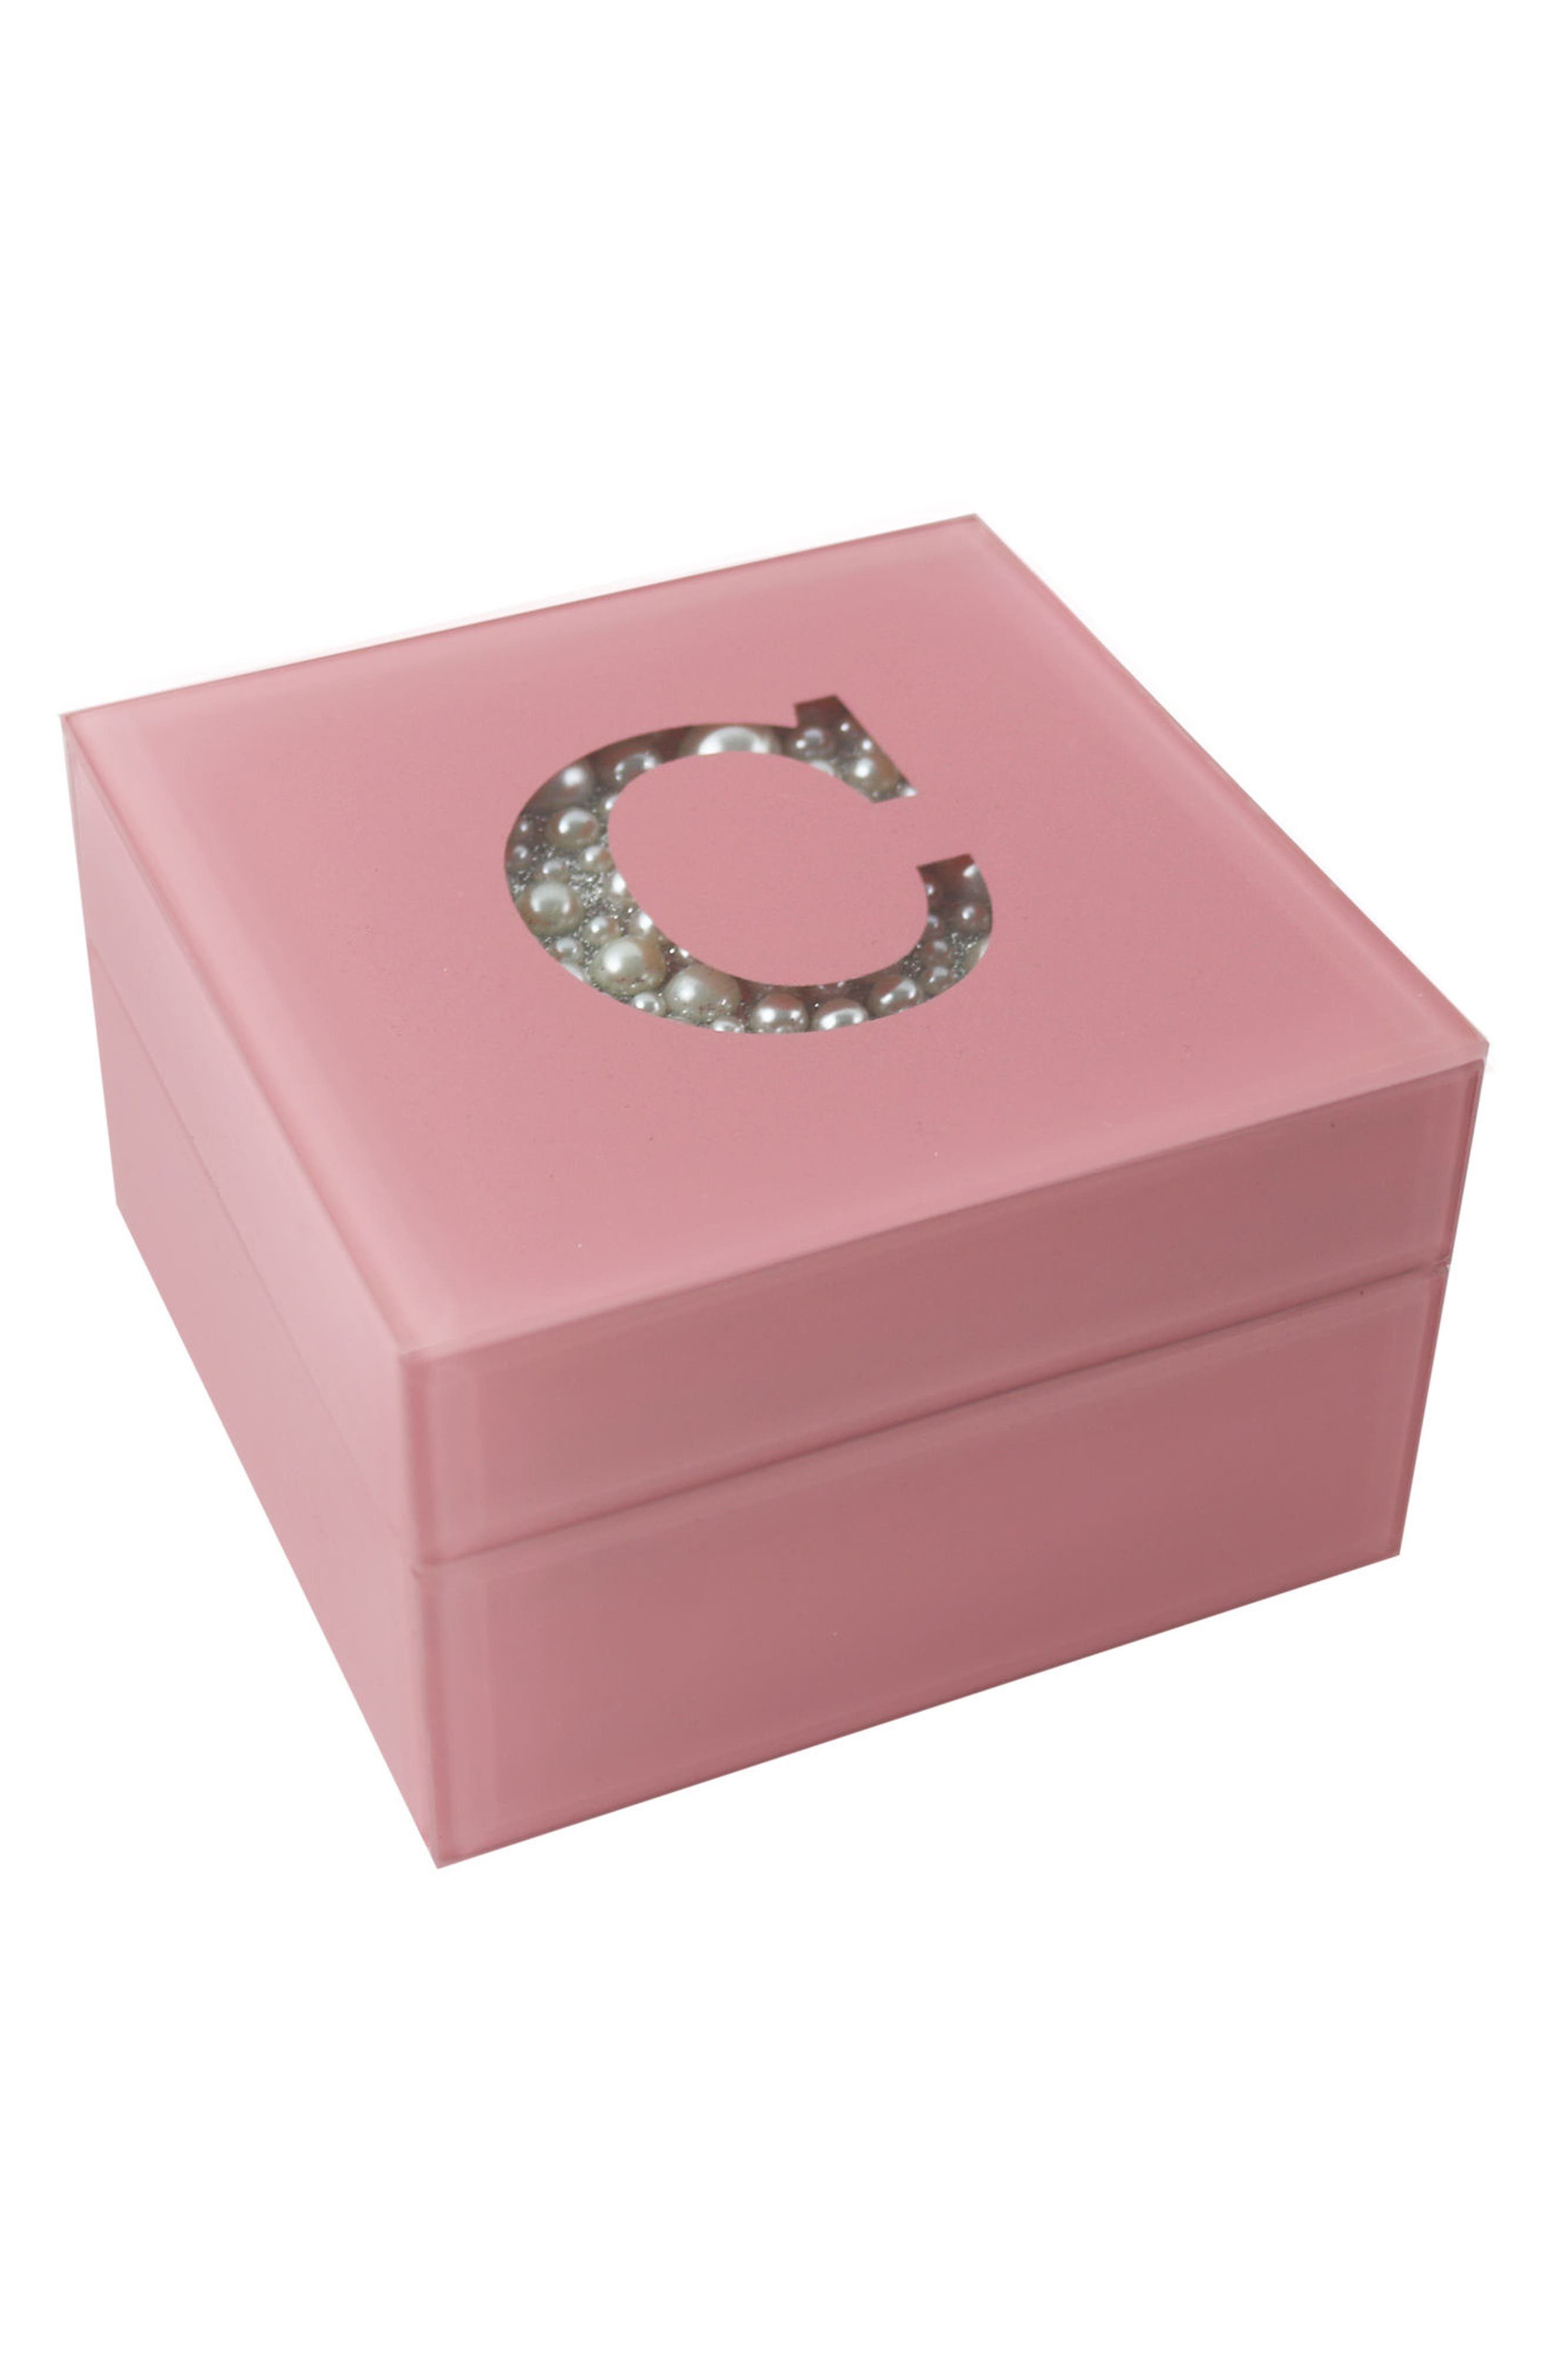 American Atelier Imitation Pearl Monogram Jewelry Box